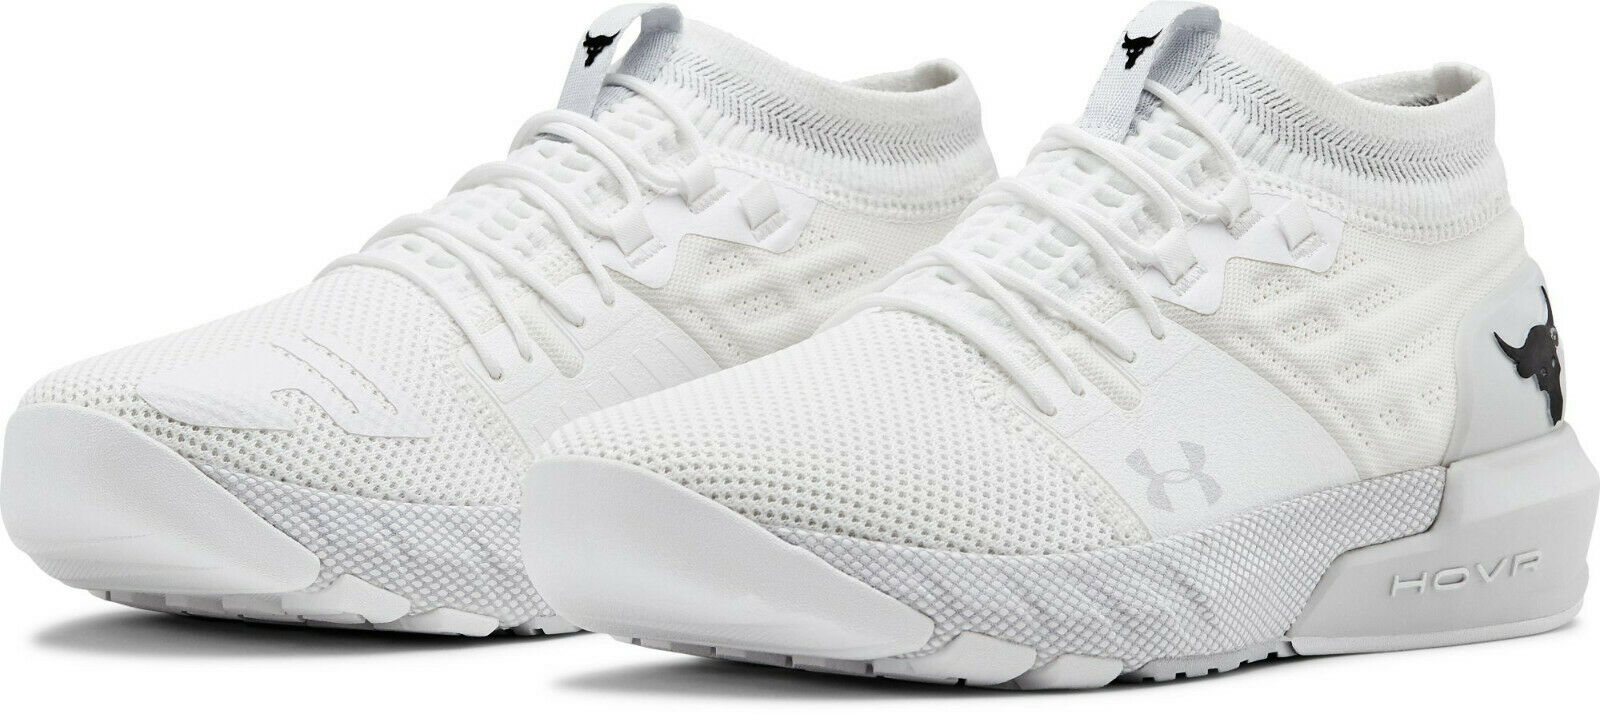 white project rock shoes